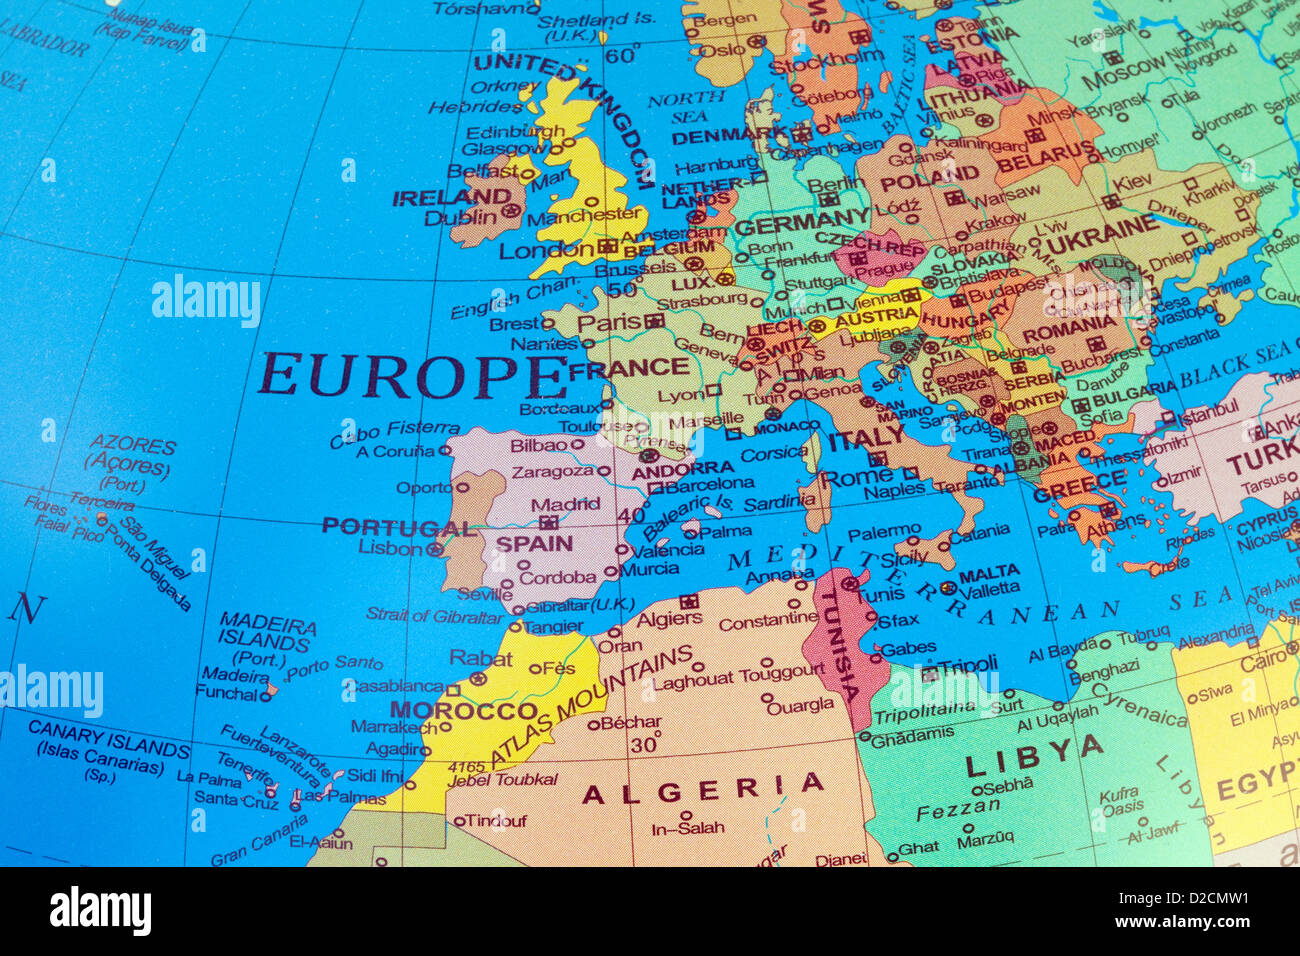 a map of europe and north africa on a globe stock photo royalty  - a map of europe and north africa on a globe